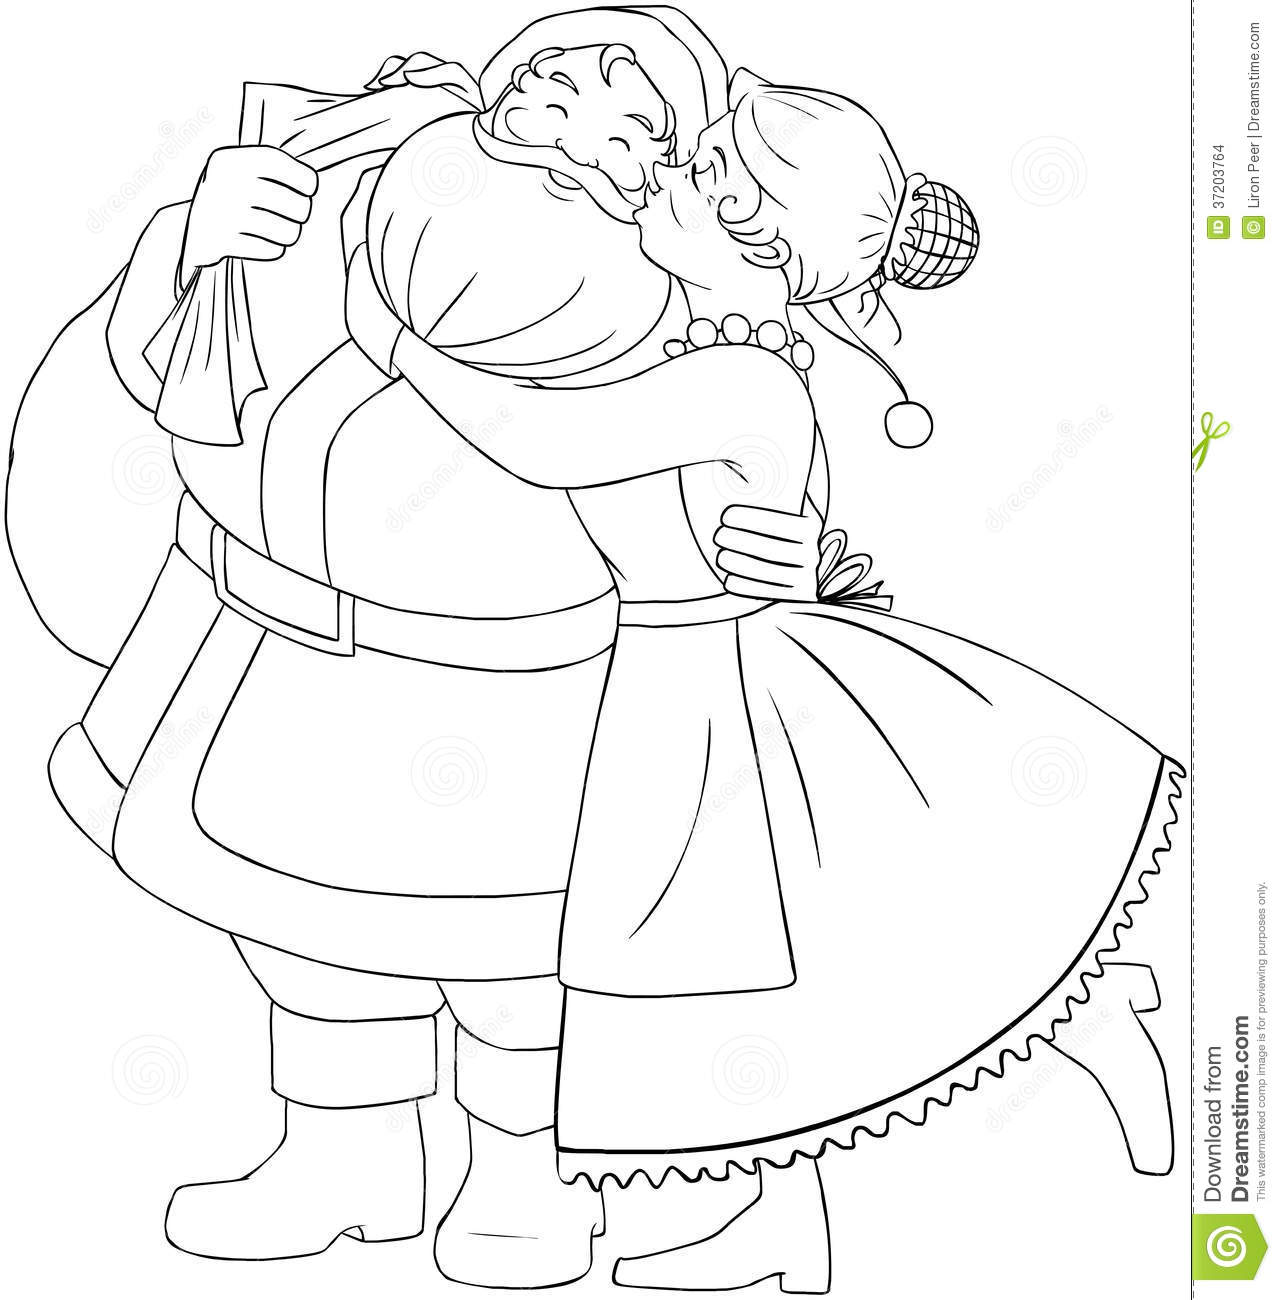 1281x1300 Santa Claus Coloring Pages Mrs. Claus Christmas Coloring Page